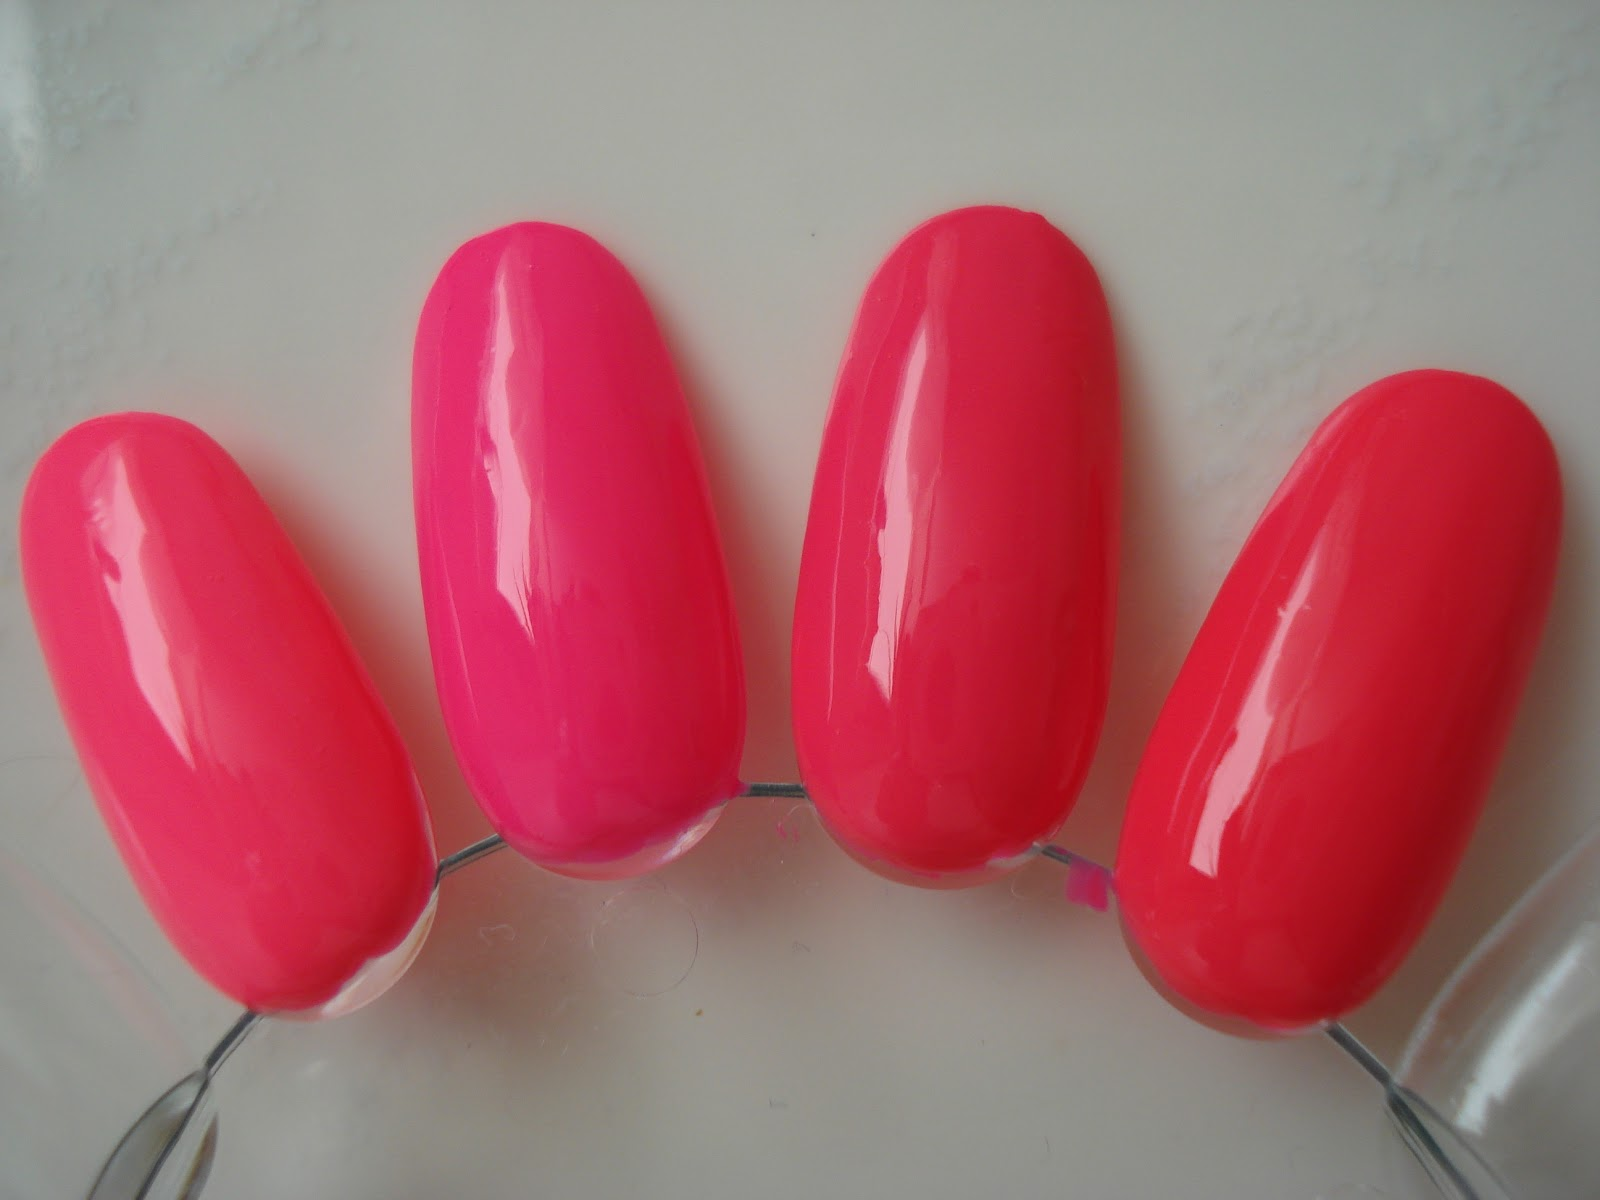 Little Miss Nailpolish: Comparison neon pink nail polishes - any dupes?